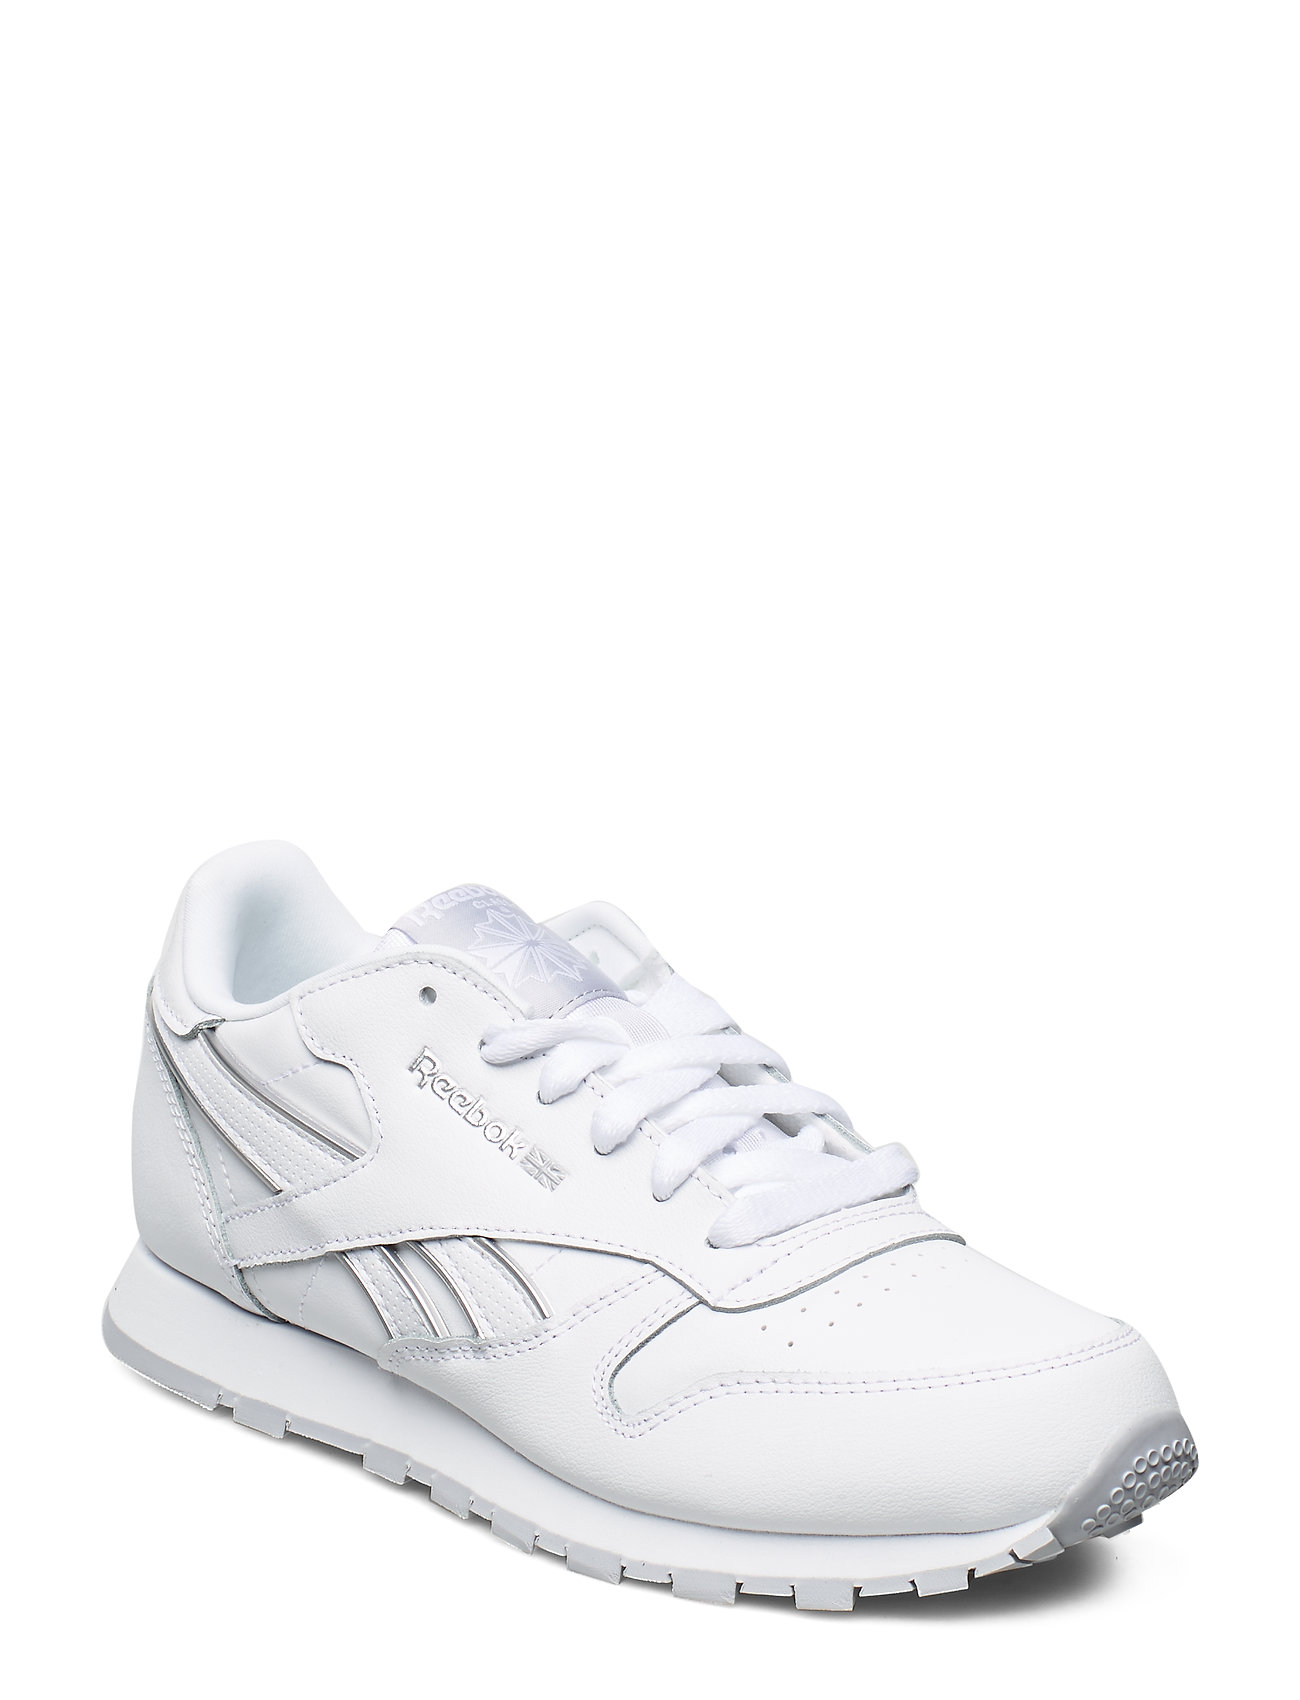 Image of Classic Leather Low-top Sneakers Hvid Reebok Classics (3250585387)